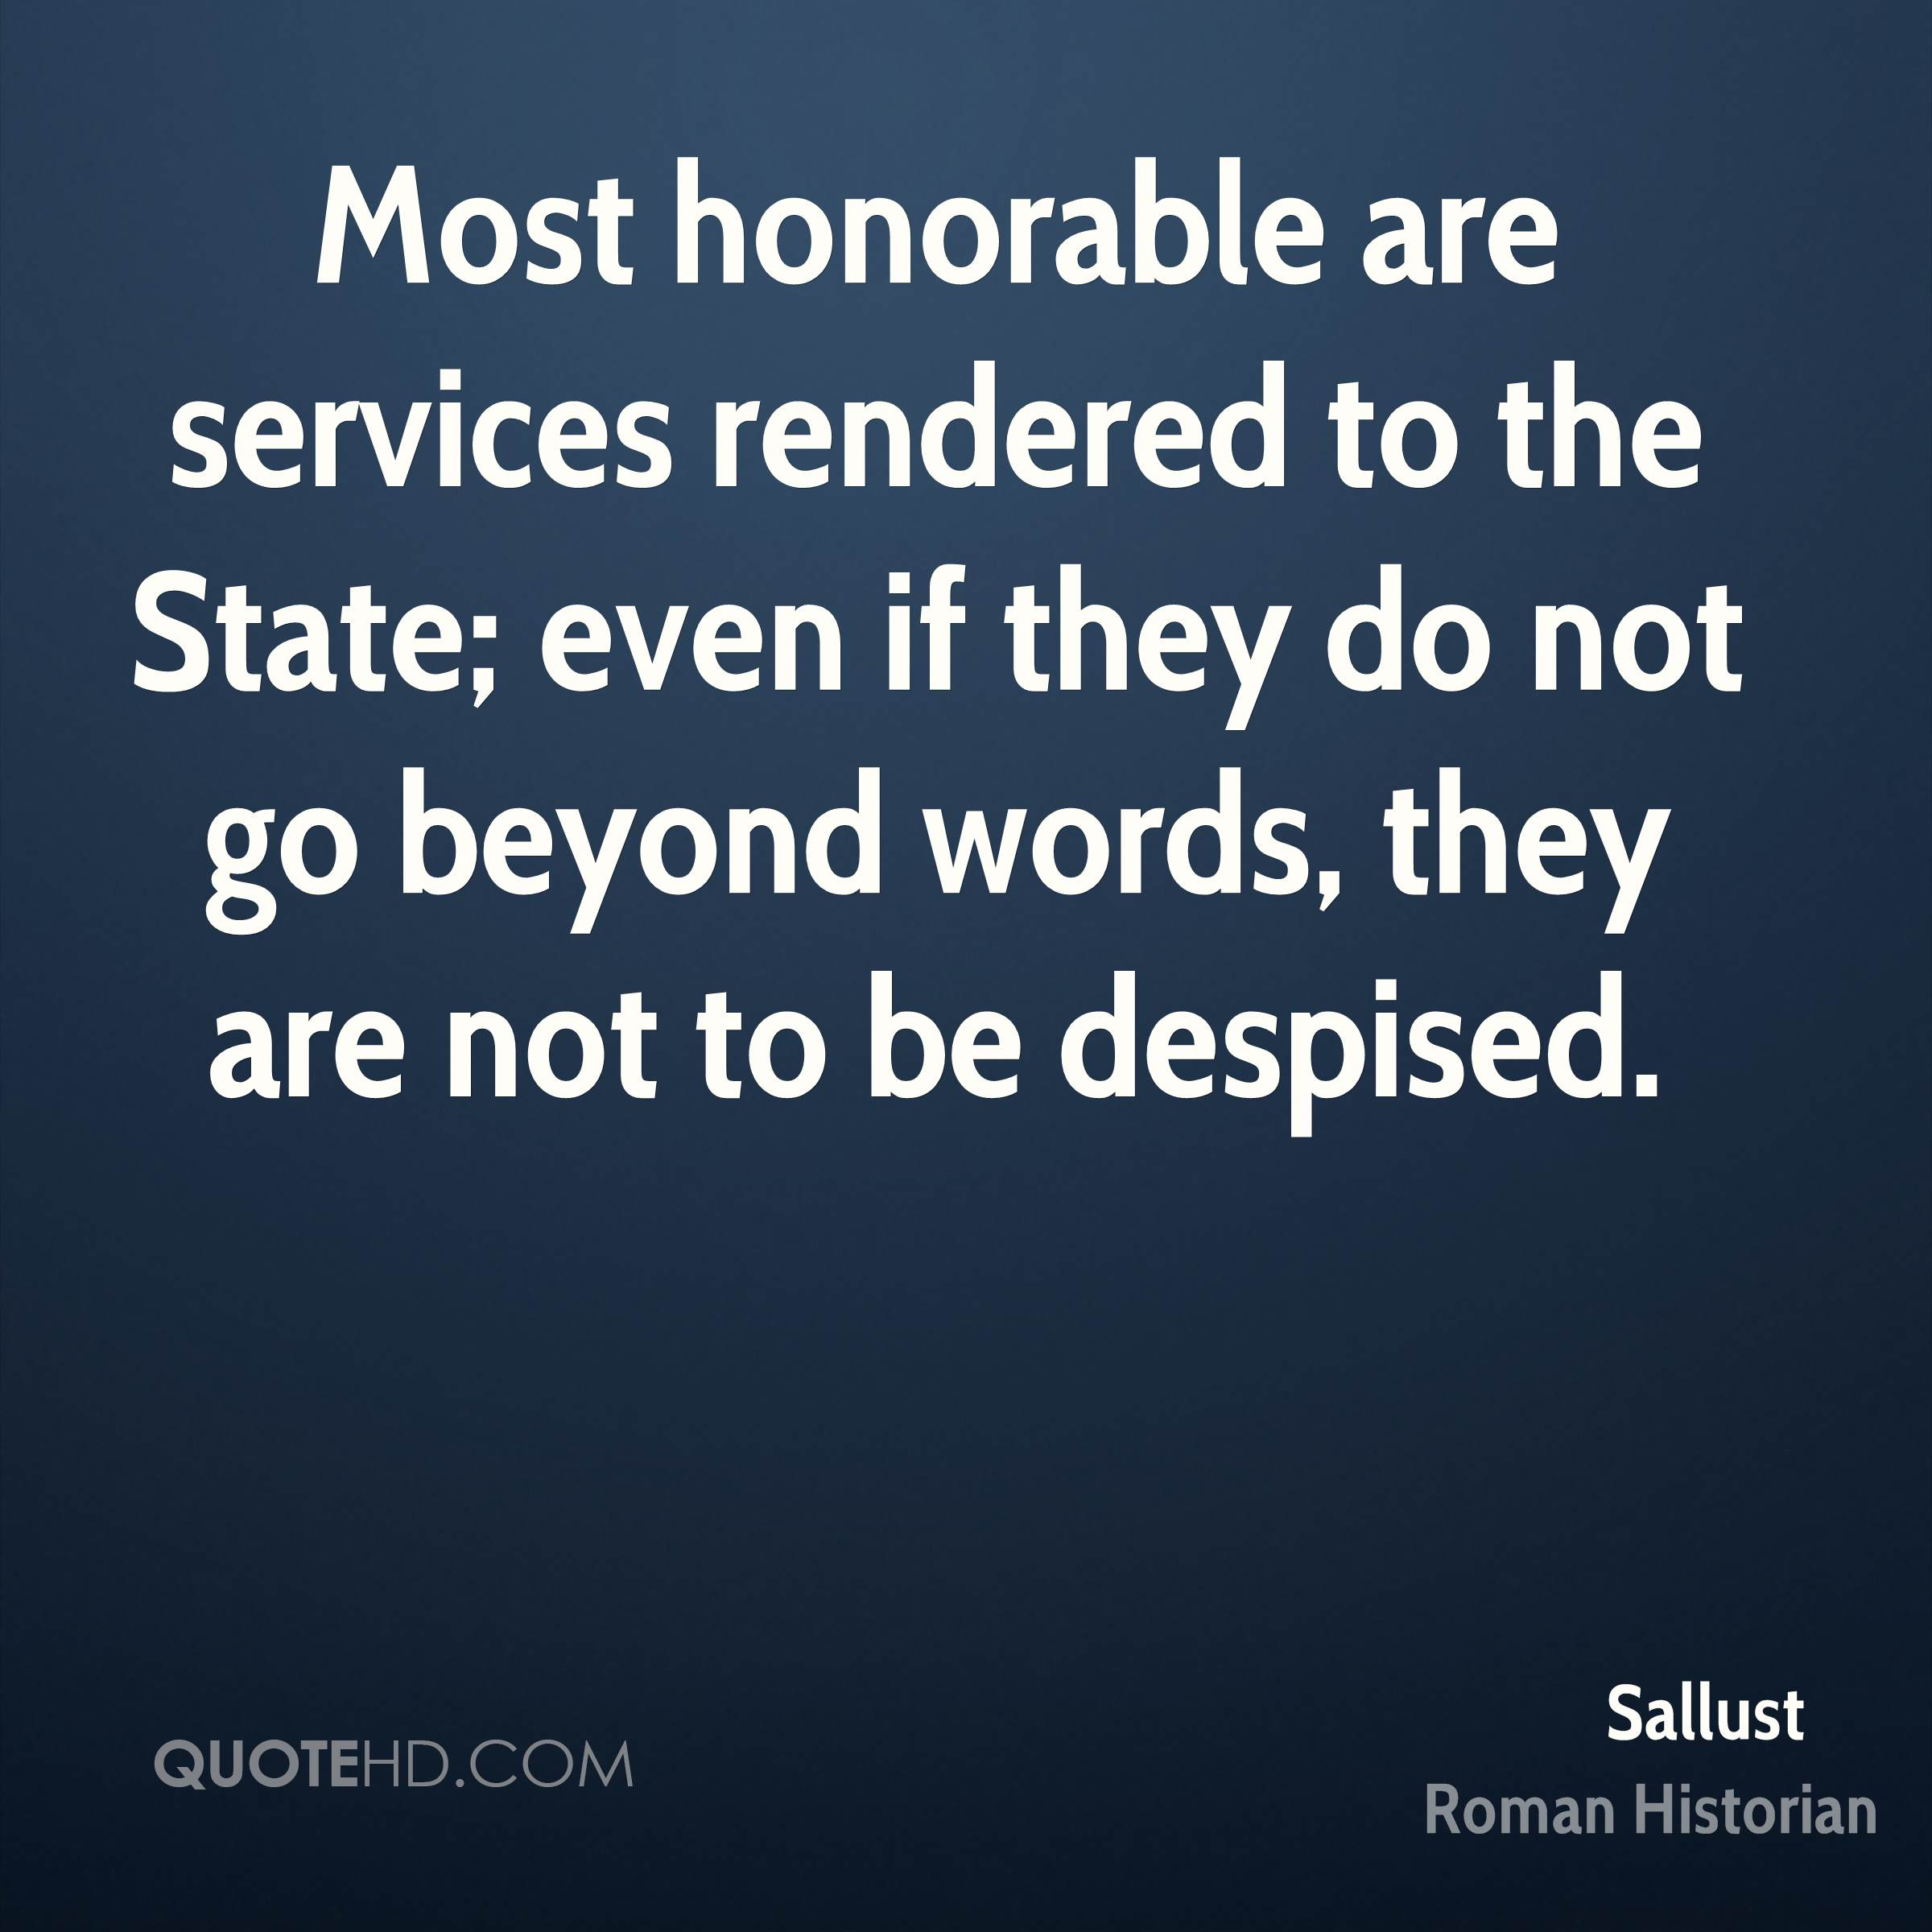 Most honorable are services rendered to the State; even if they do not go beyond words, they are not to be despised.